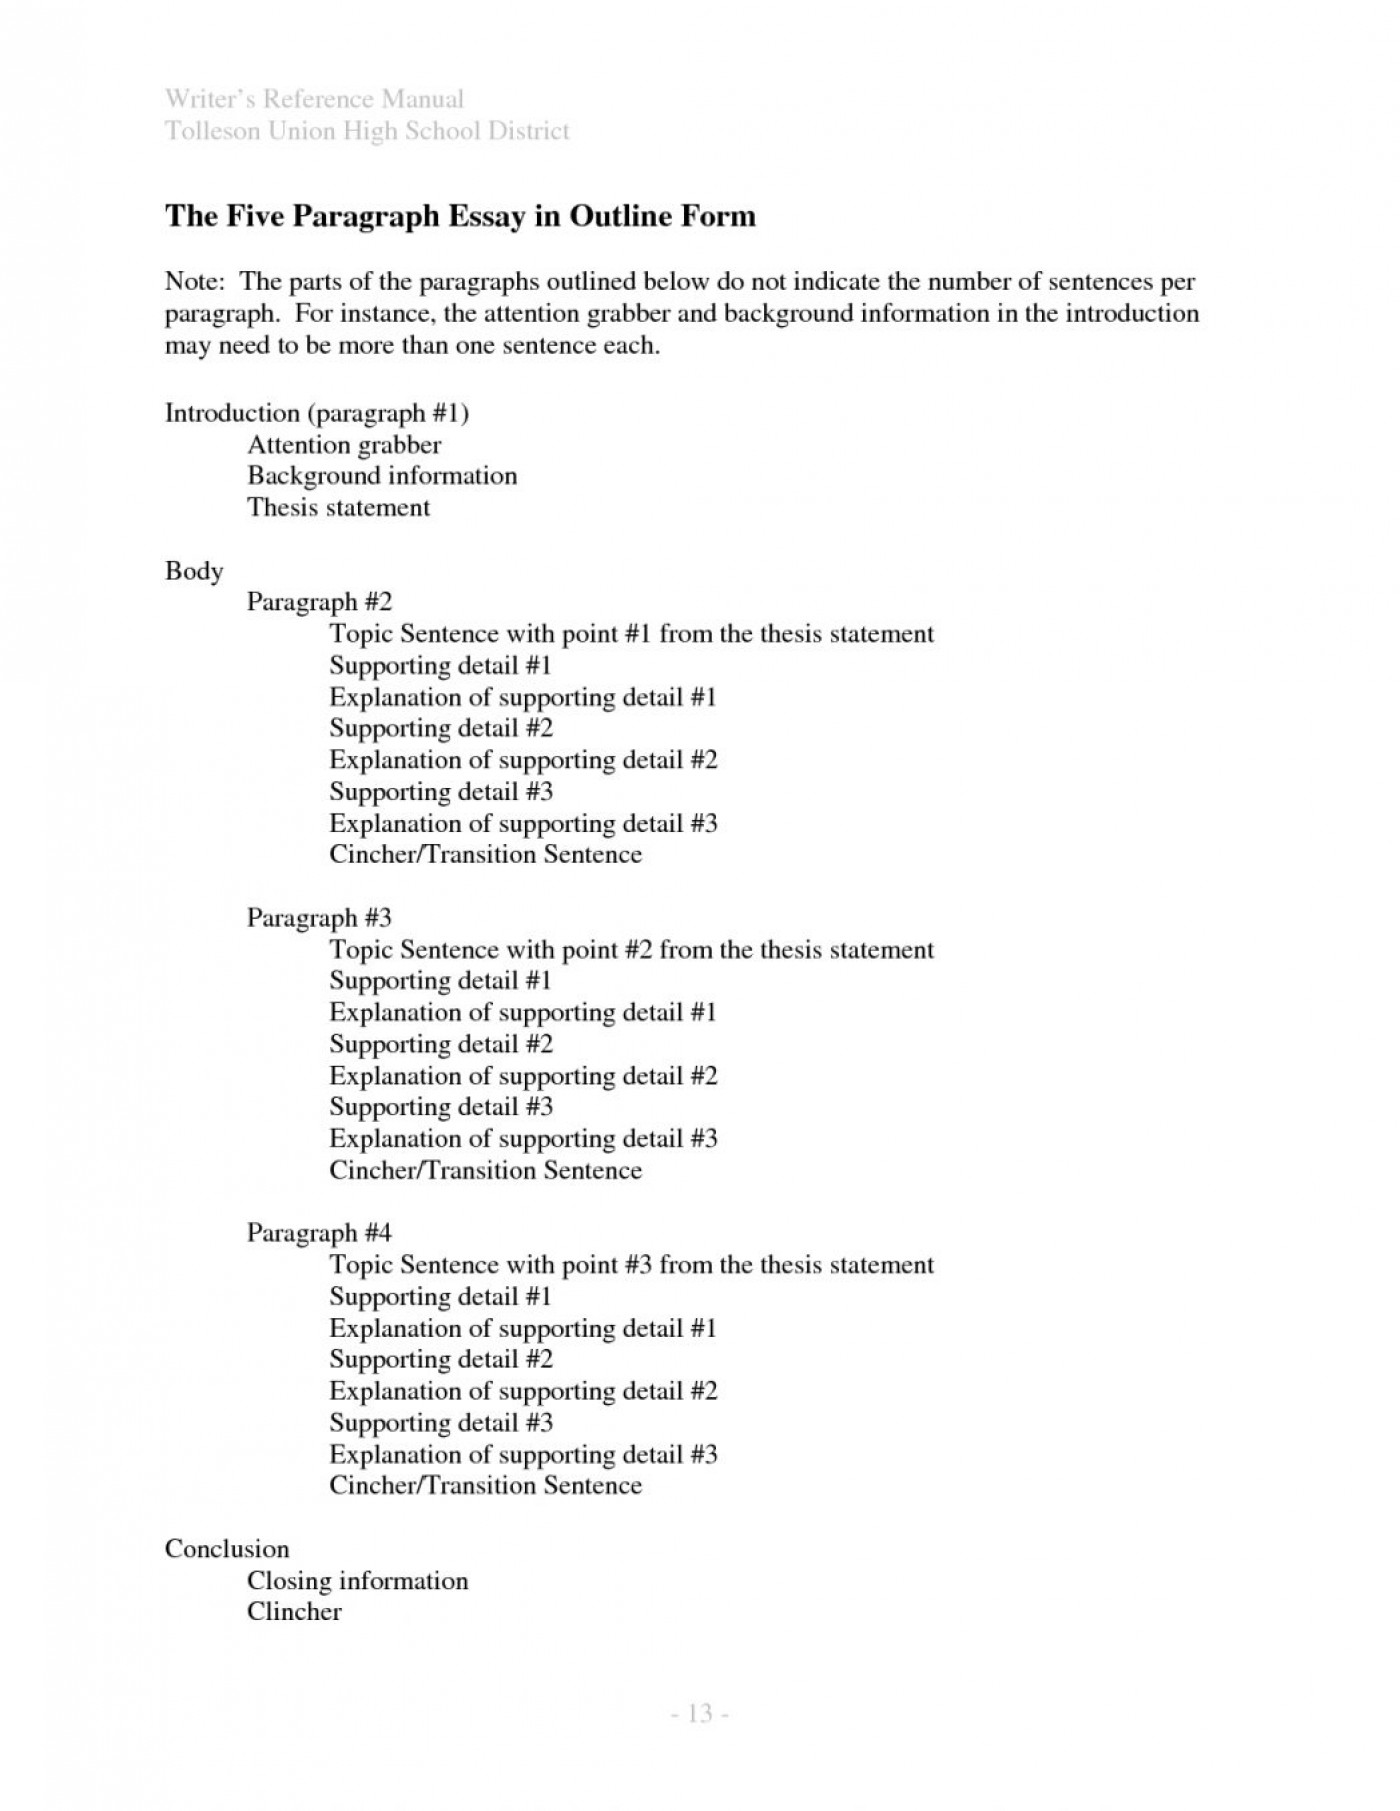 014 Interesting Topics For Research Paper High School An Outline Argumentative Essay Abortion Frightening A Students 1400